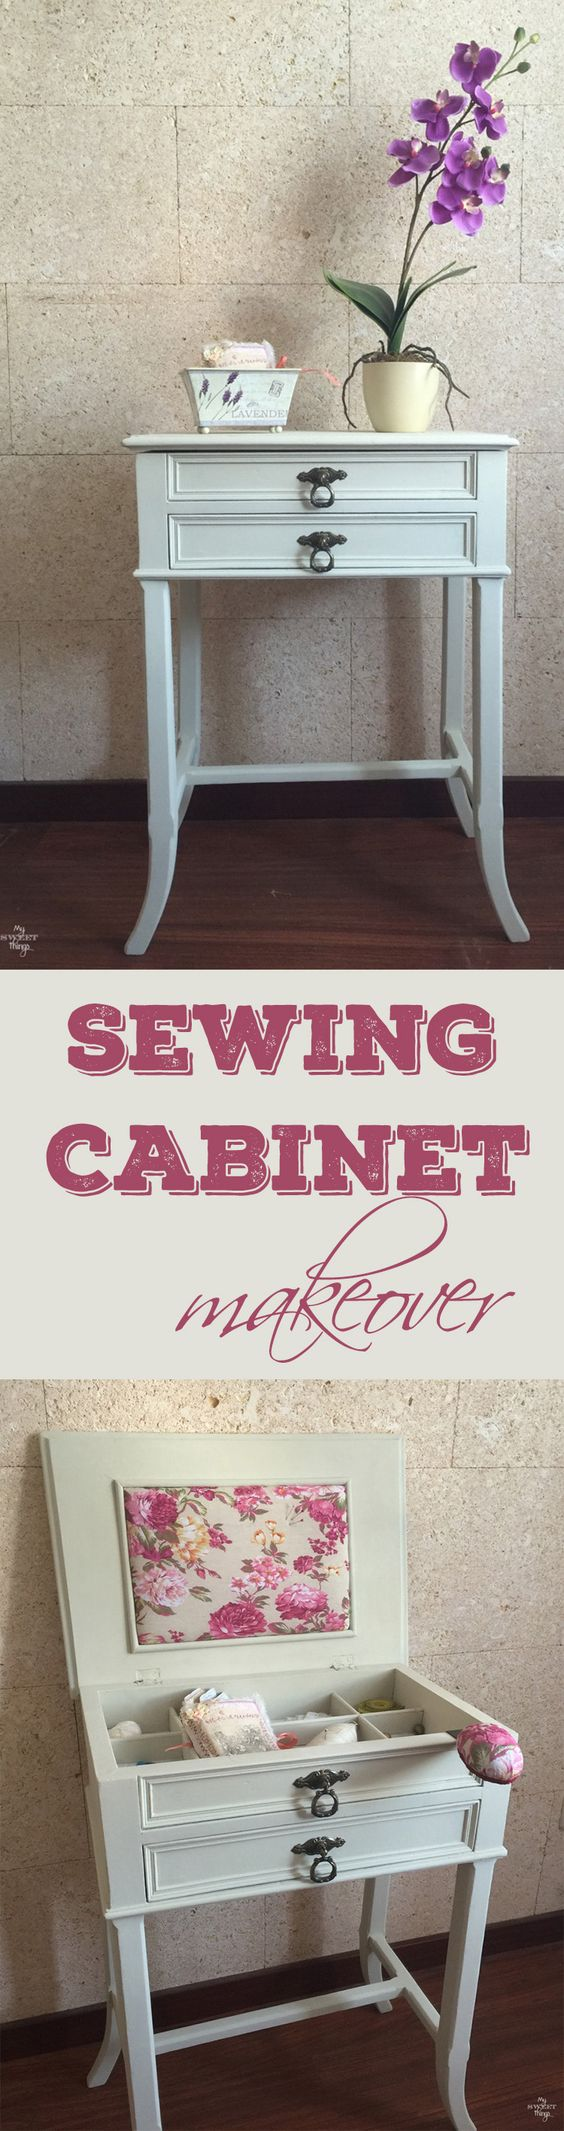 Sewing cabinet makeover from an old sewing cabinet with paint and some pretty…